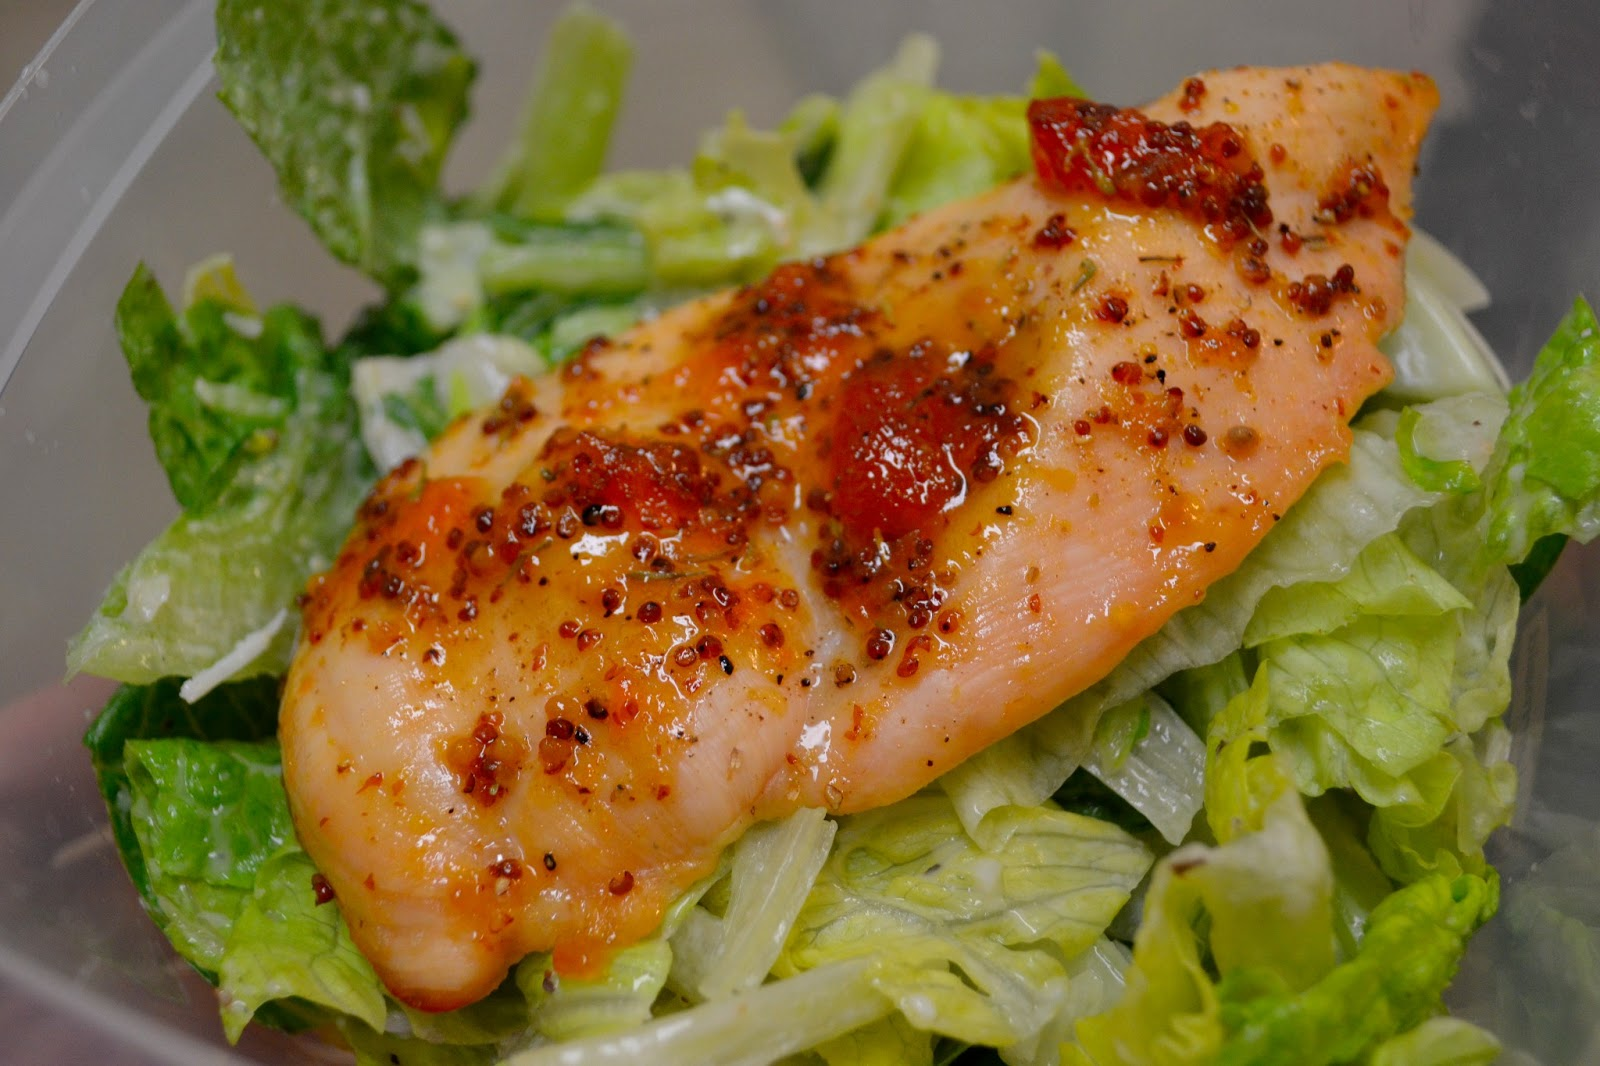 Baked Chicken Breast Recipes Easy Calories Bone In And ...